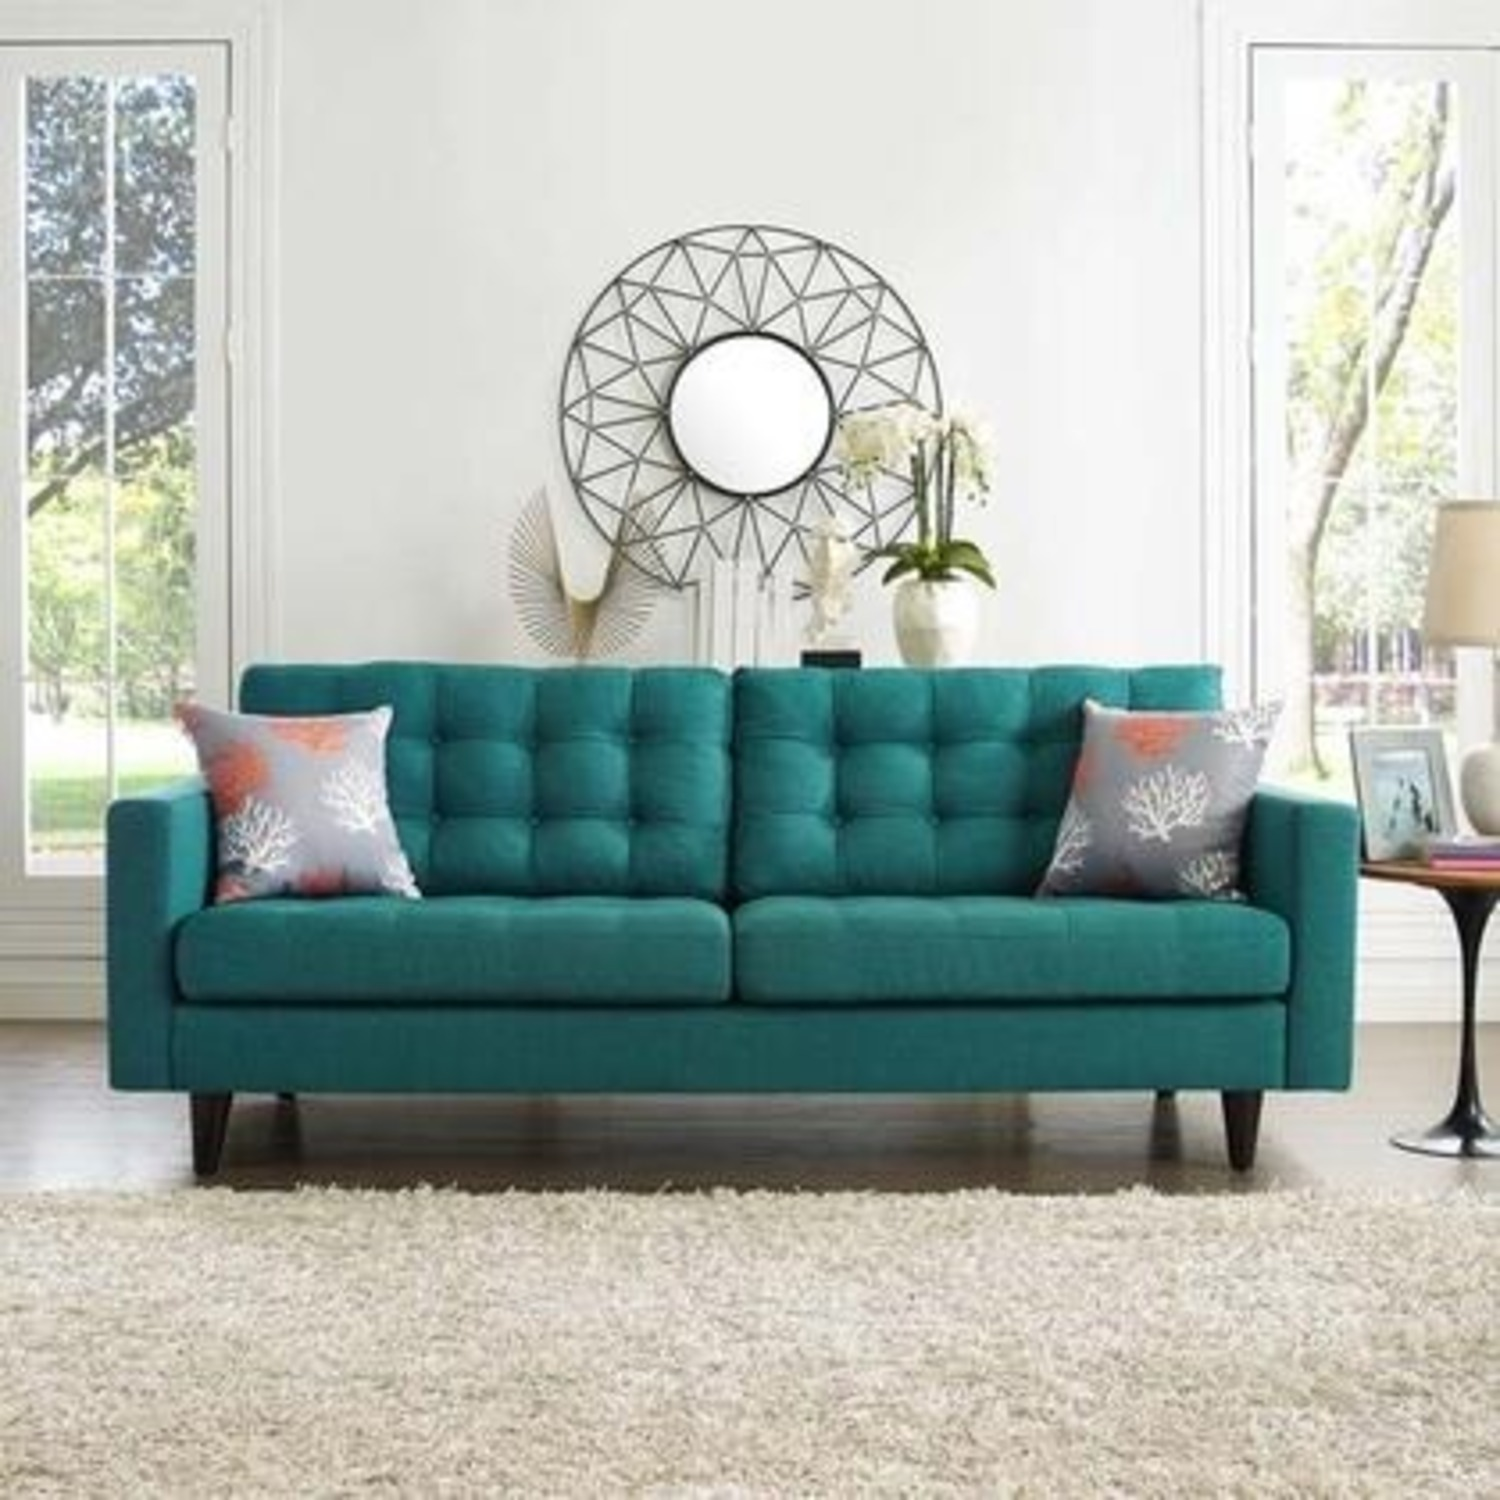 Modern Style Sofa In Teal Fabric W/ Tufted Buttons - image-3